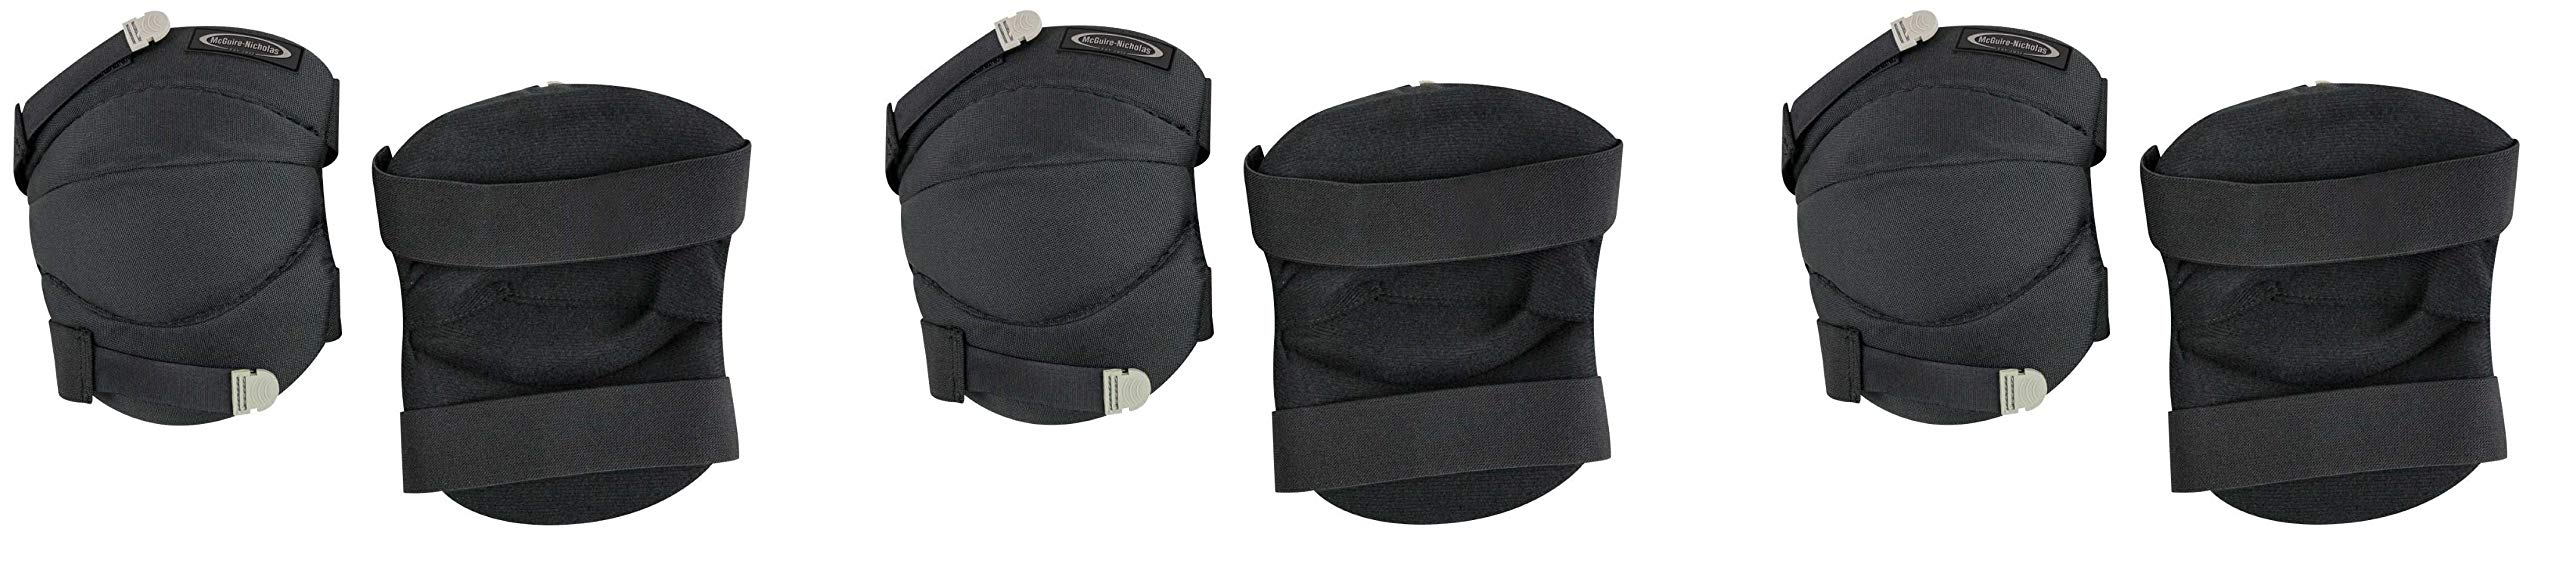 McGuire-Nicholas All Purpose Adjustable Soft Cushion Knee Pads (3-Pack) by RPPSTER GROUP